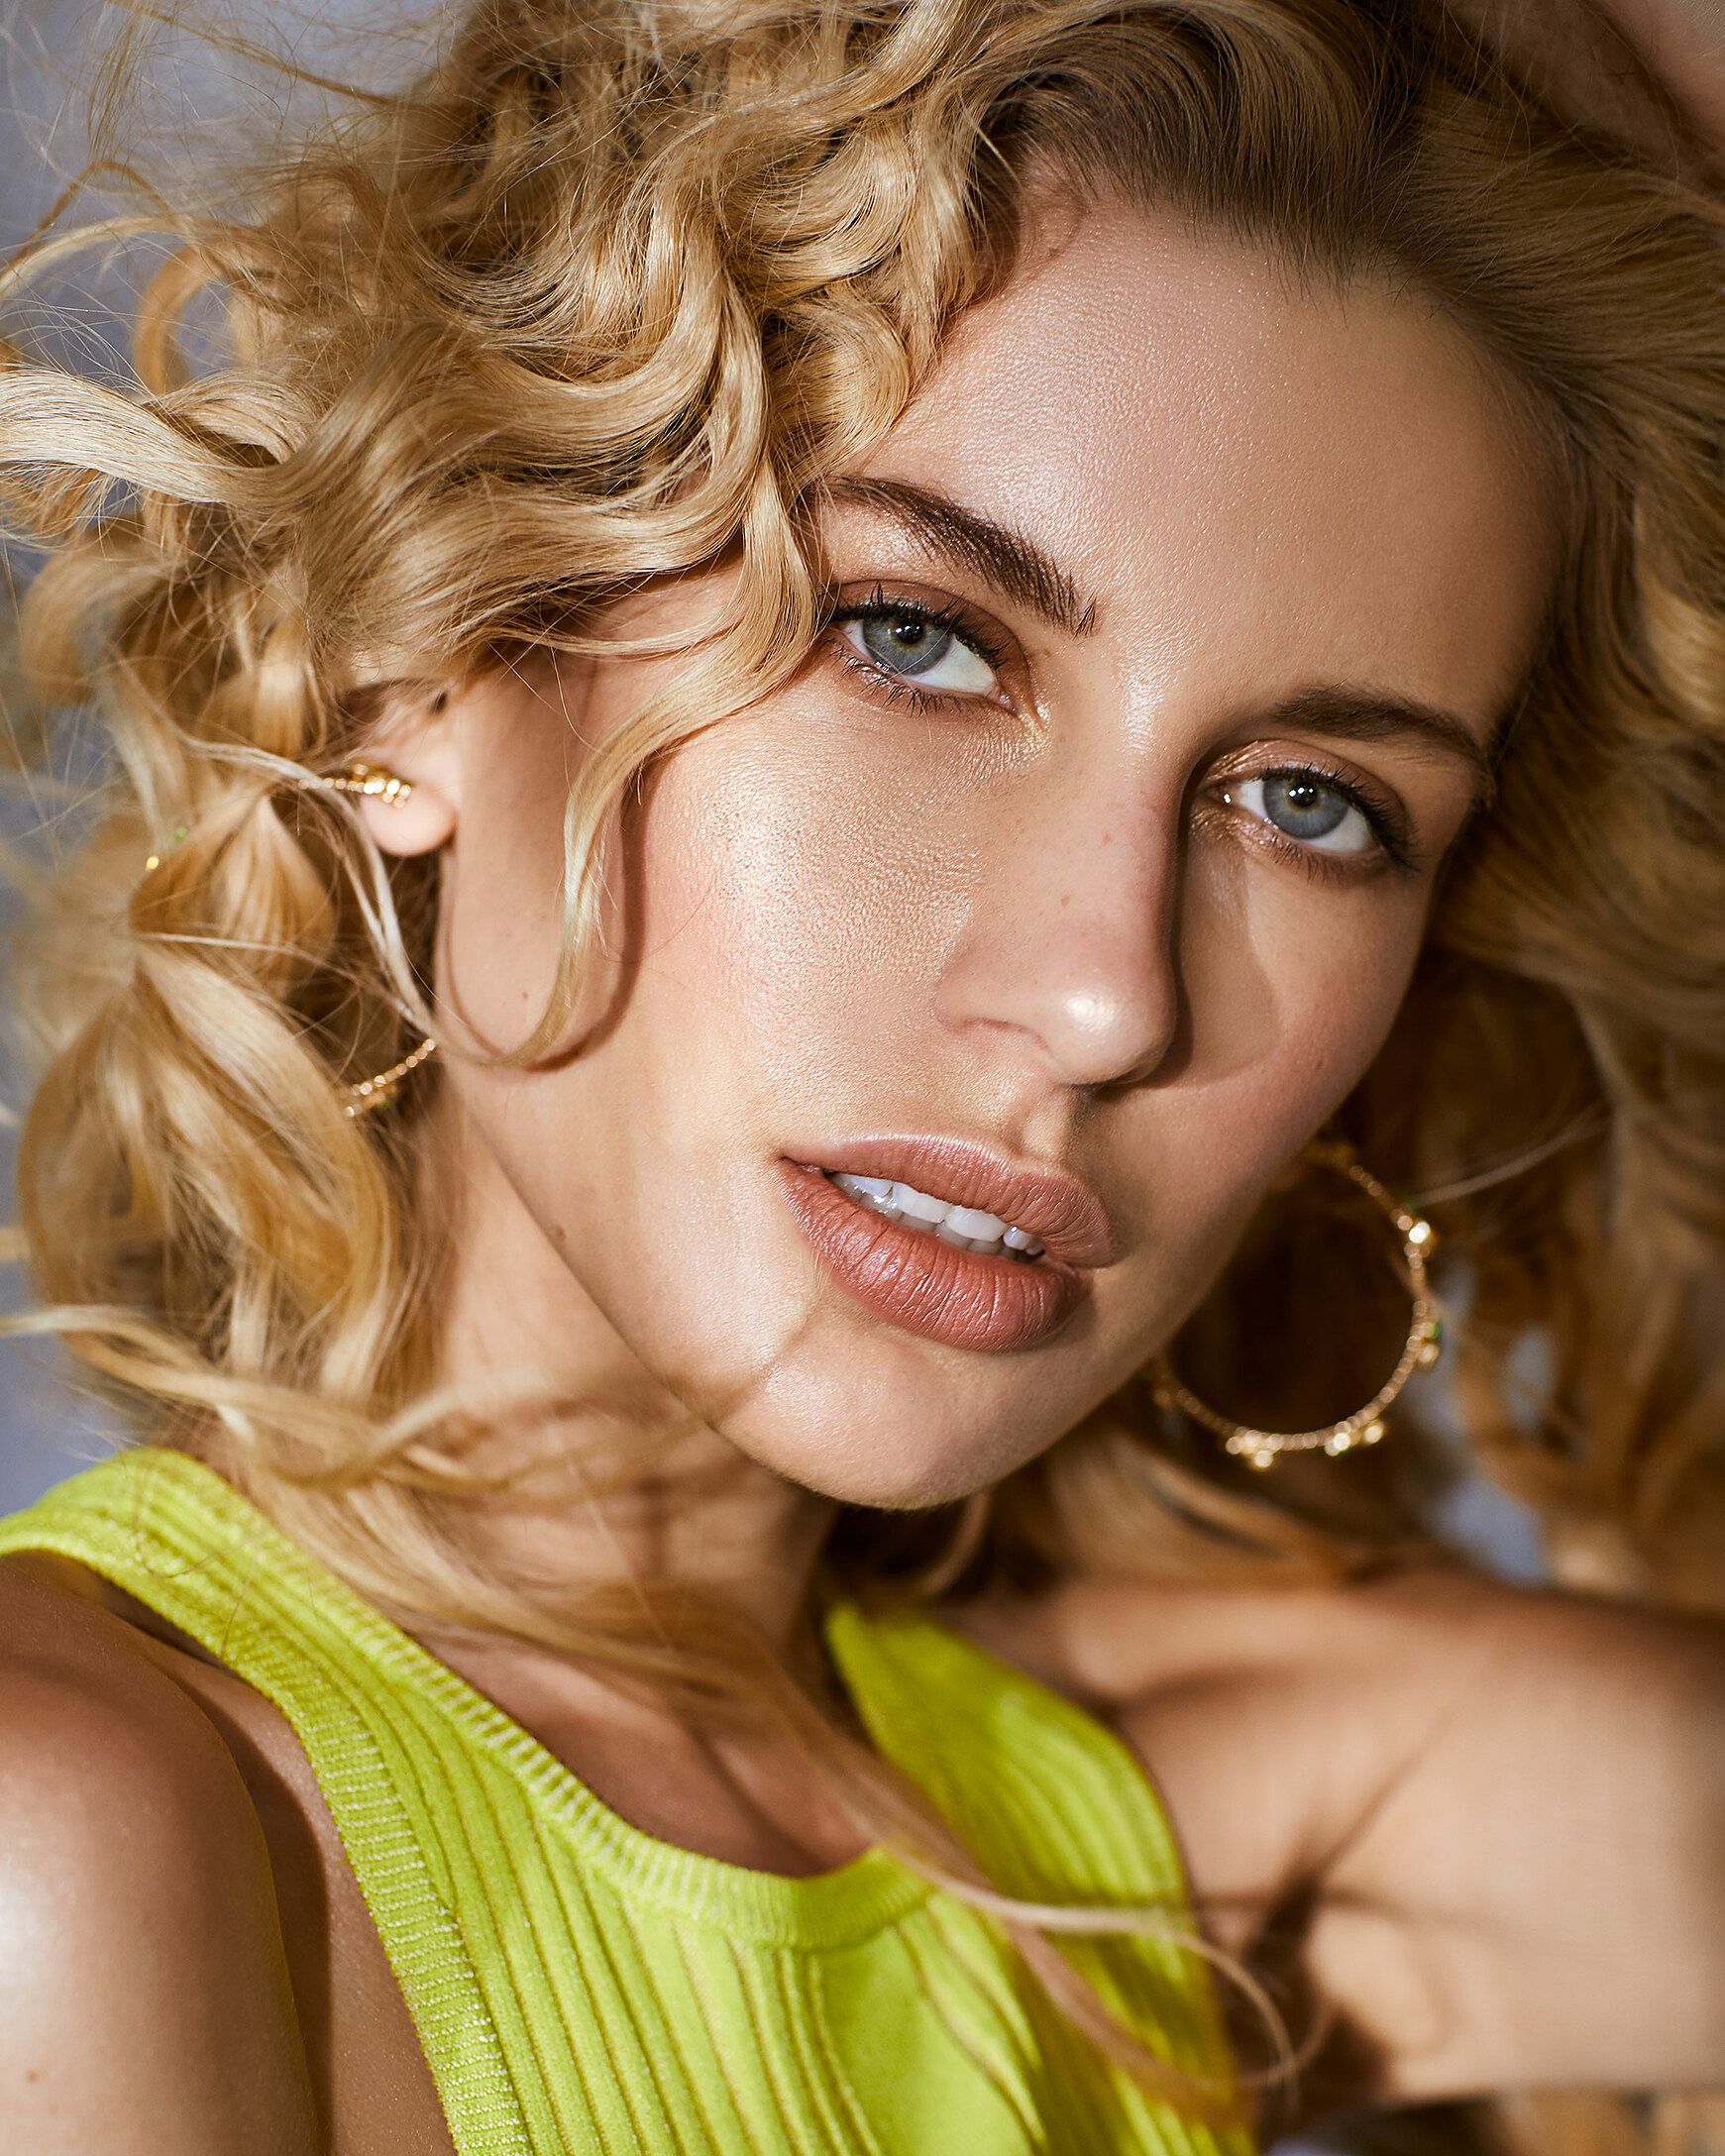 A female model in a citrus yellow crop top with curly blonde hair.